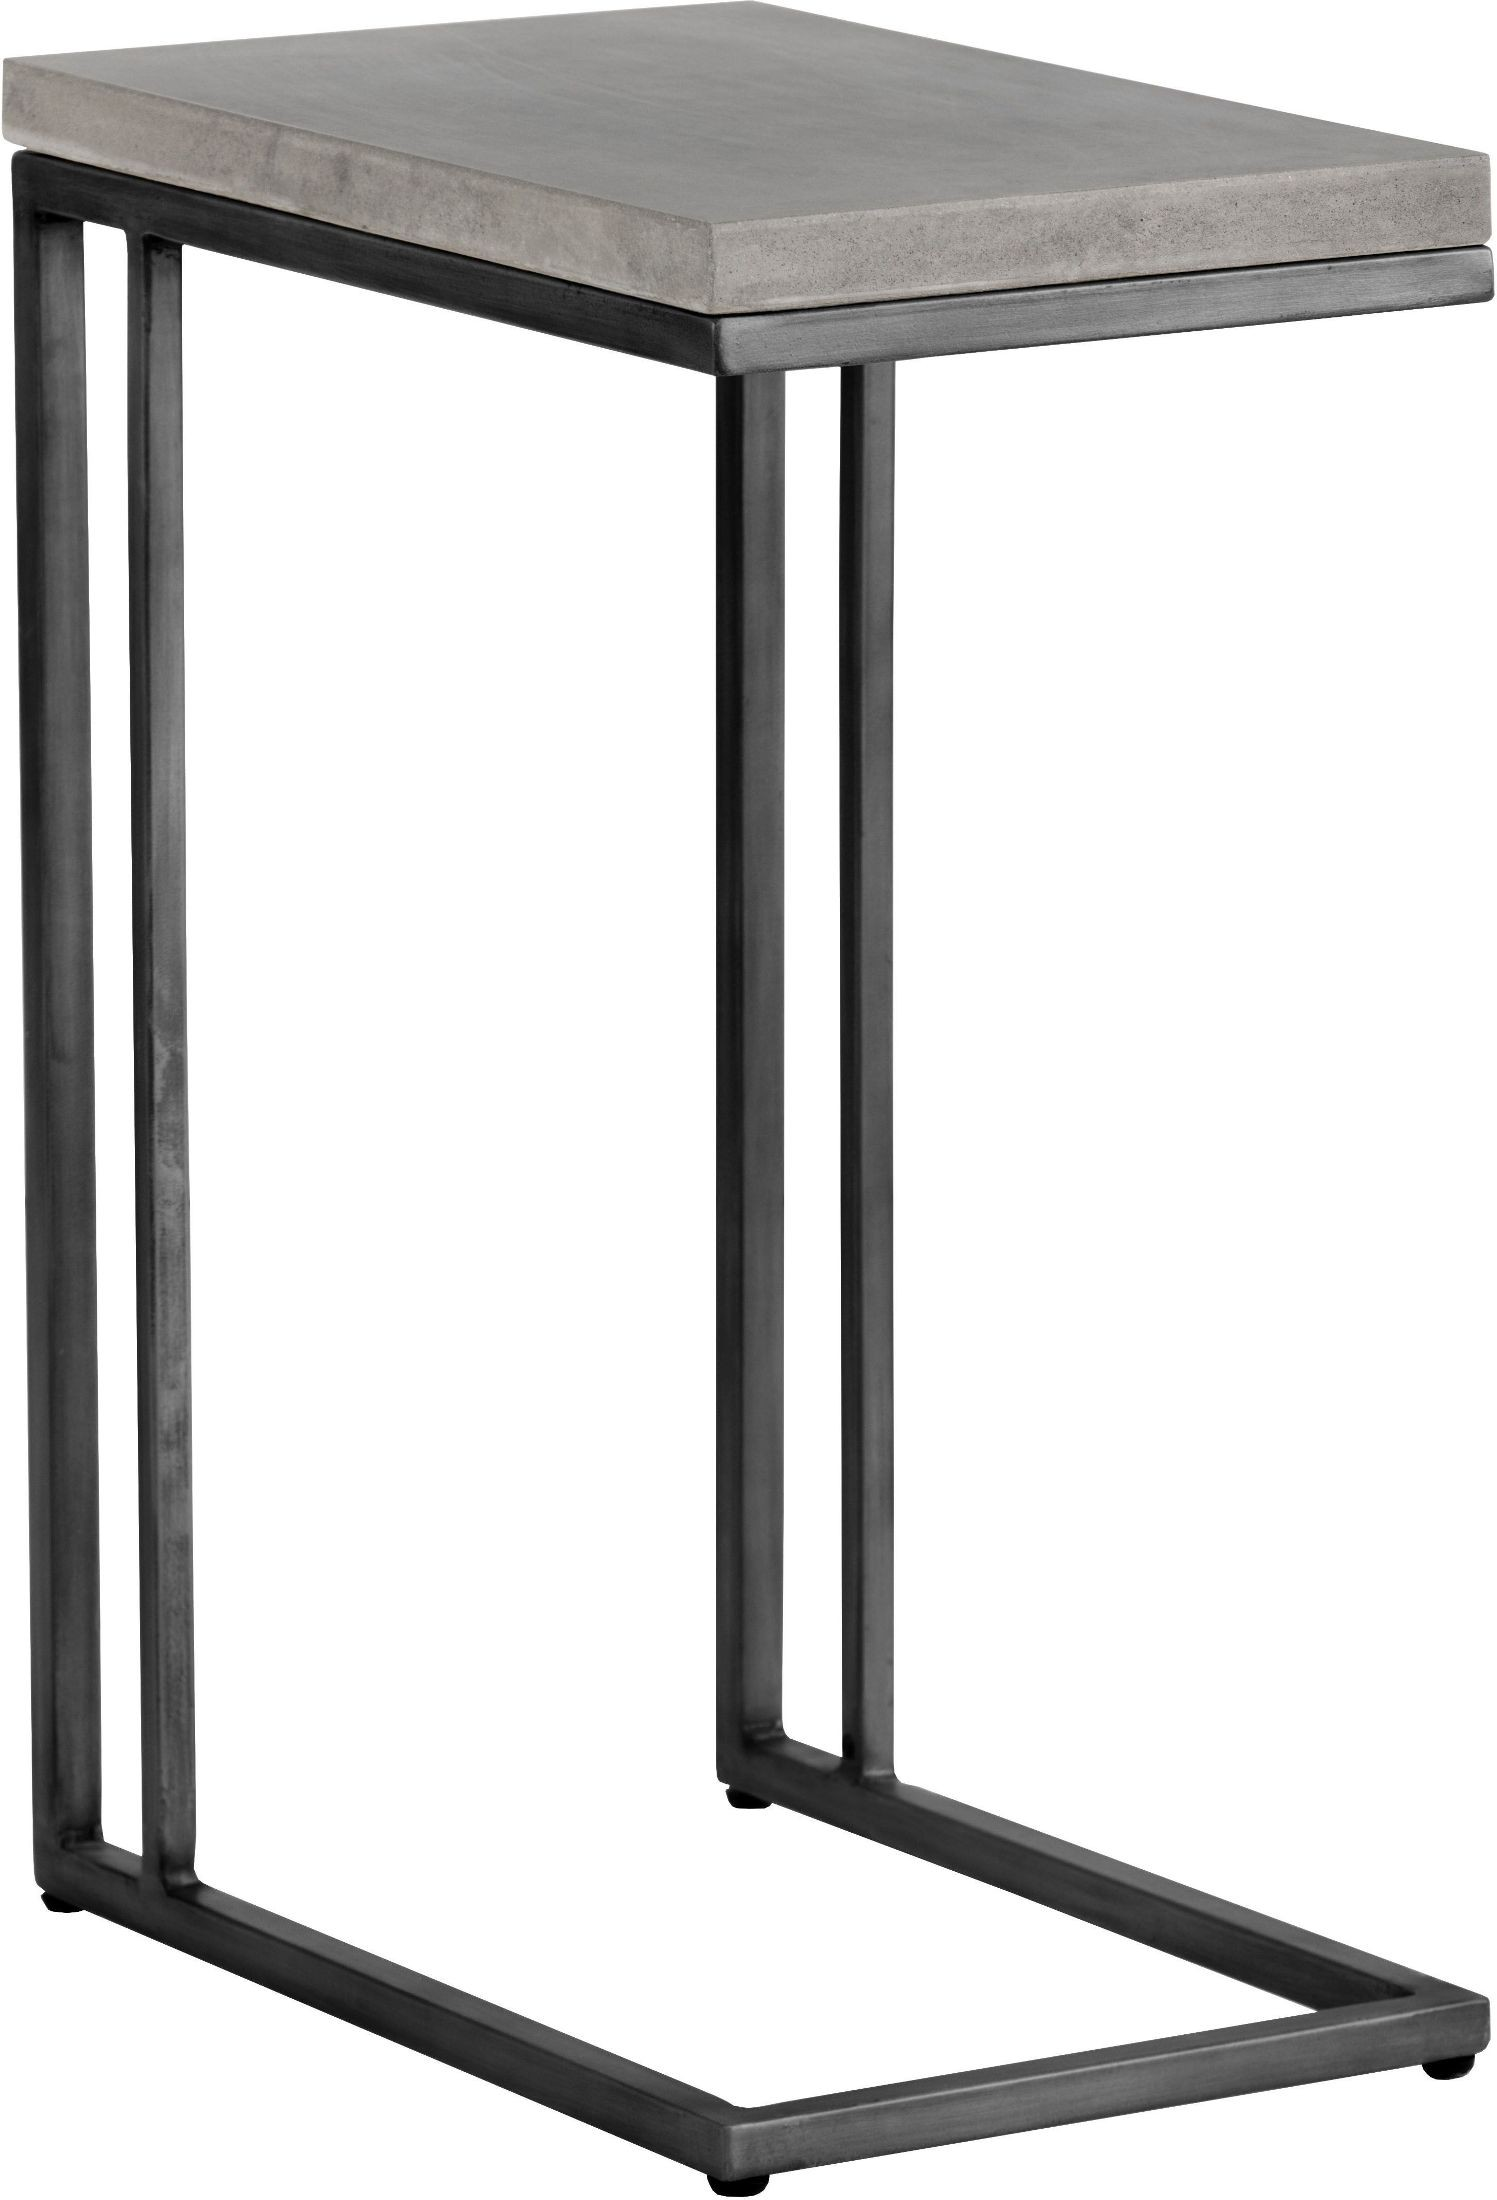 shaped end table diy sawyer from sunpan coleman furniture shape acrylic accent black wrought iron coffee piece nesting set grey nightstand ashley sofa outdoor clearance rose gold